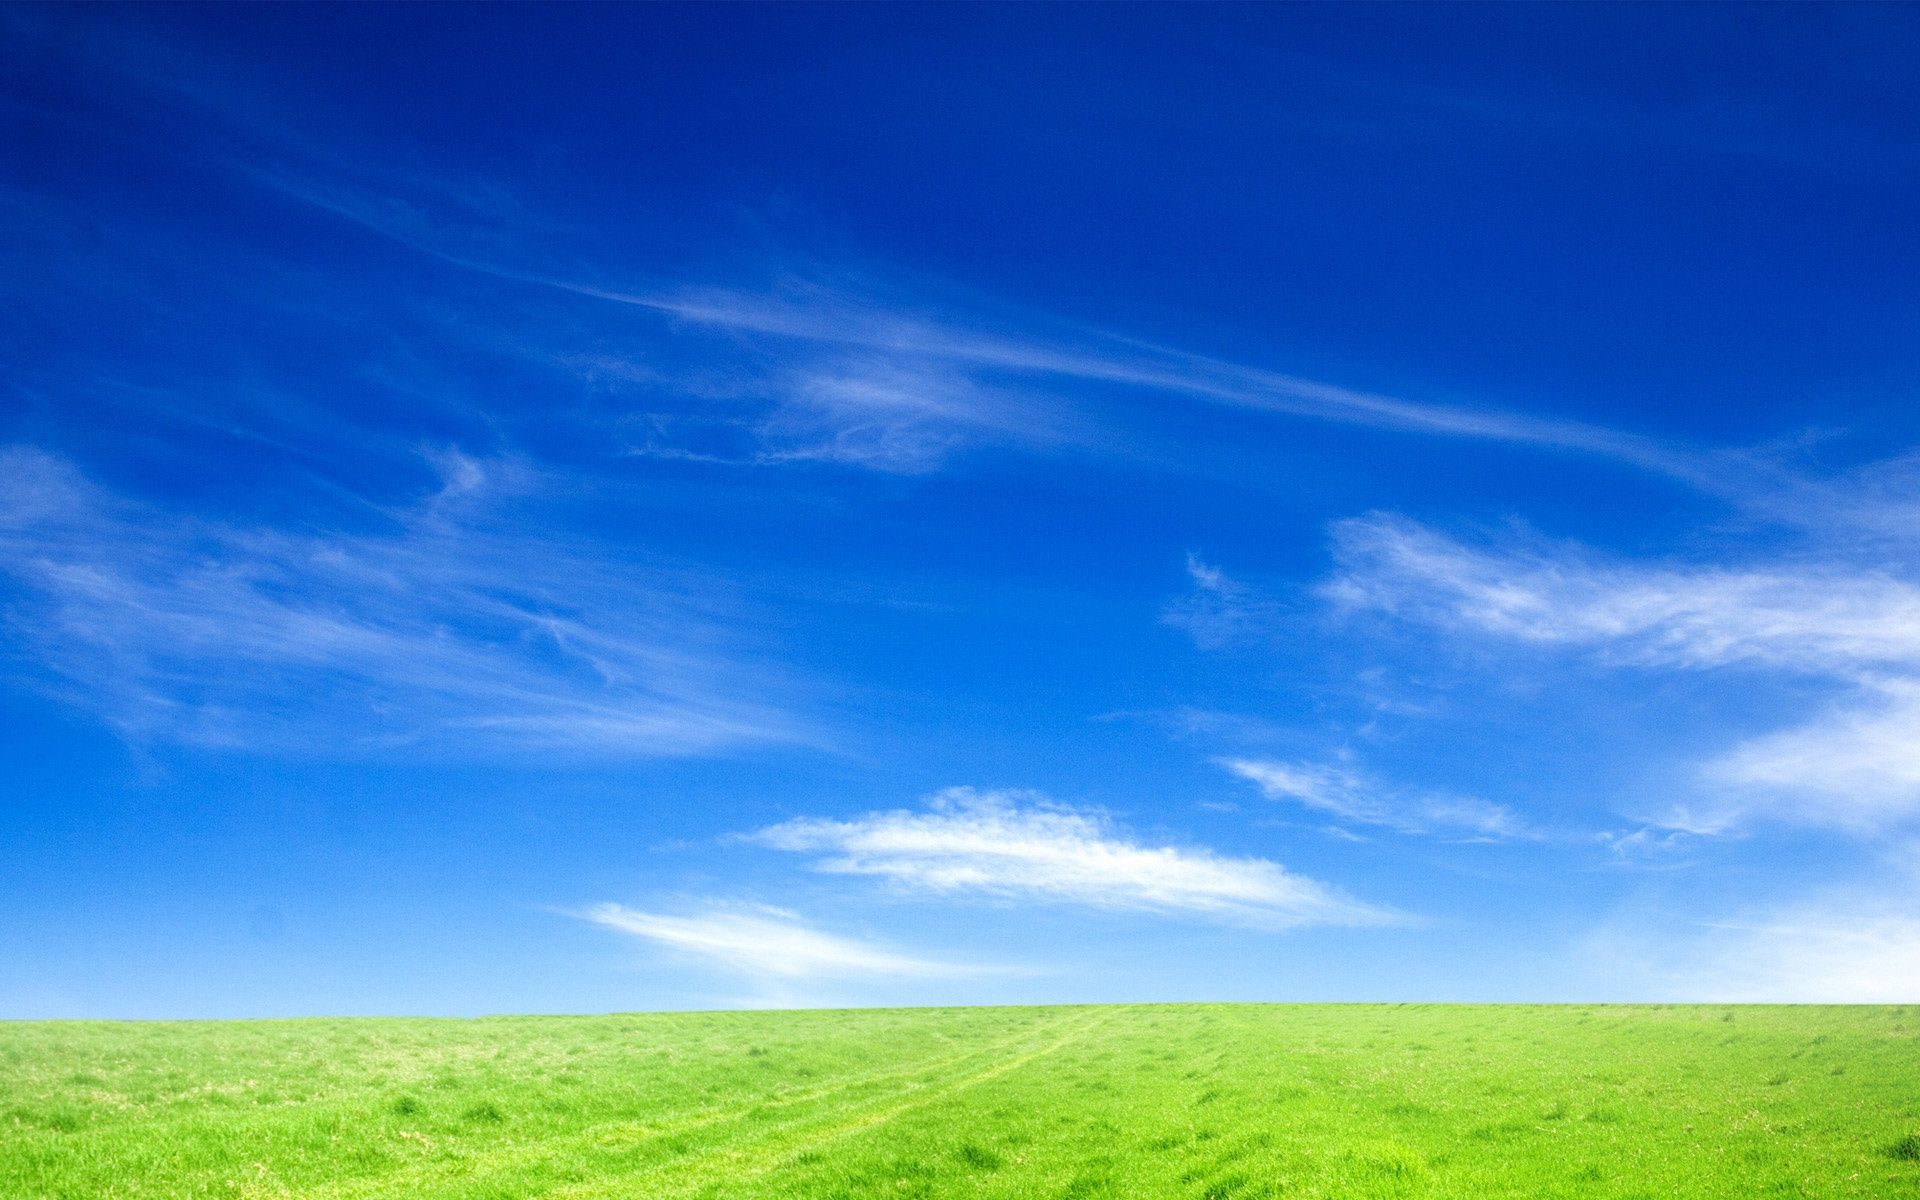 sky wallpapers collection for free download | hd wallpapers